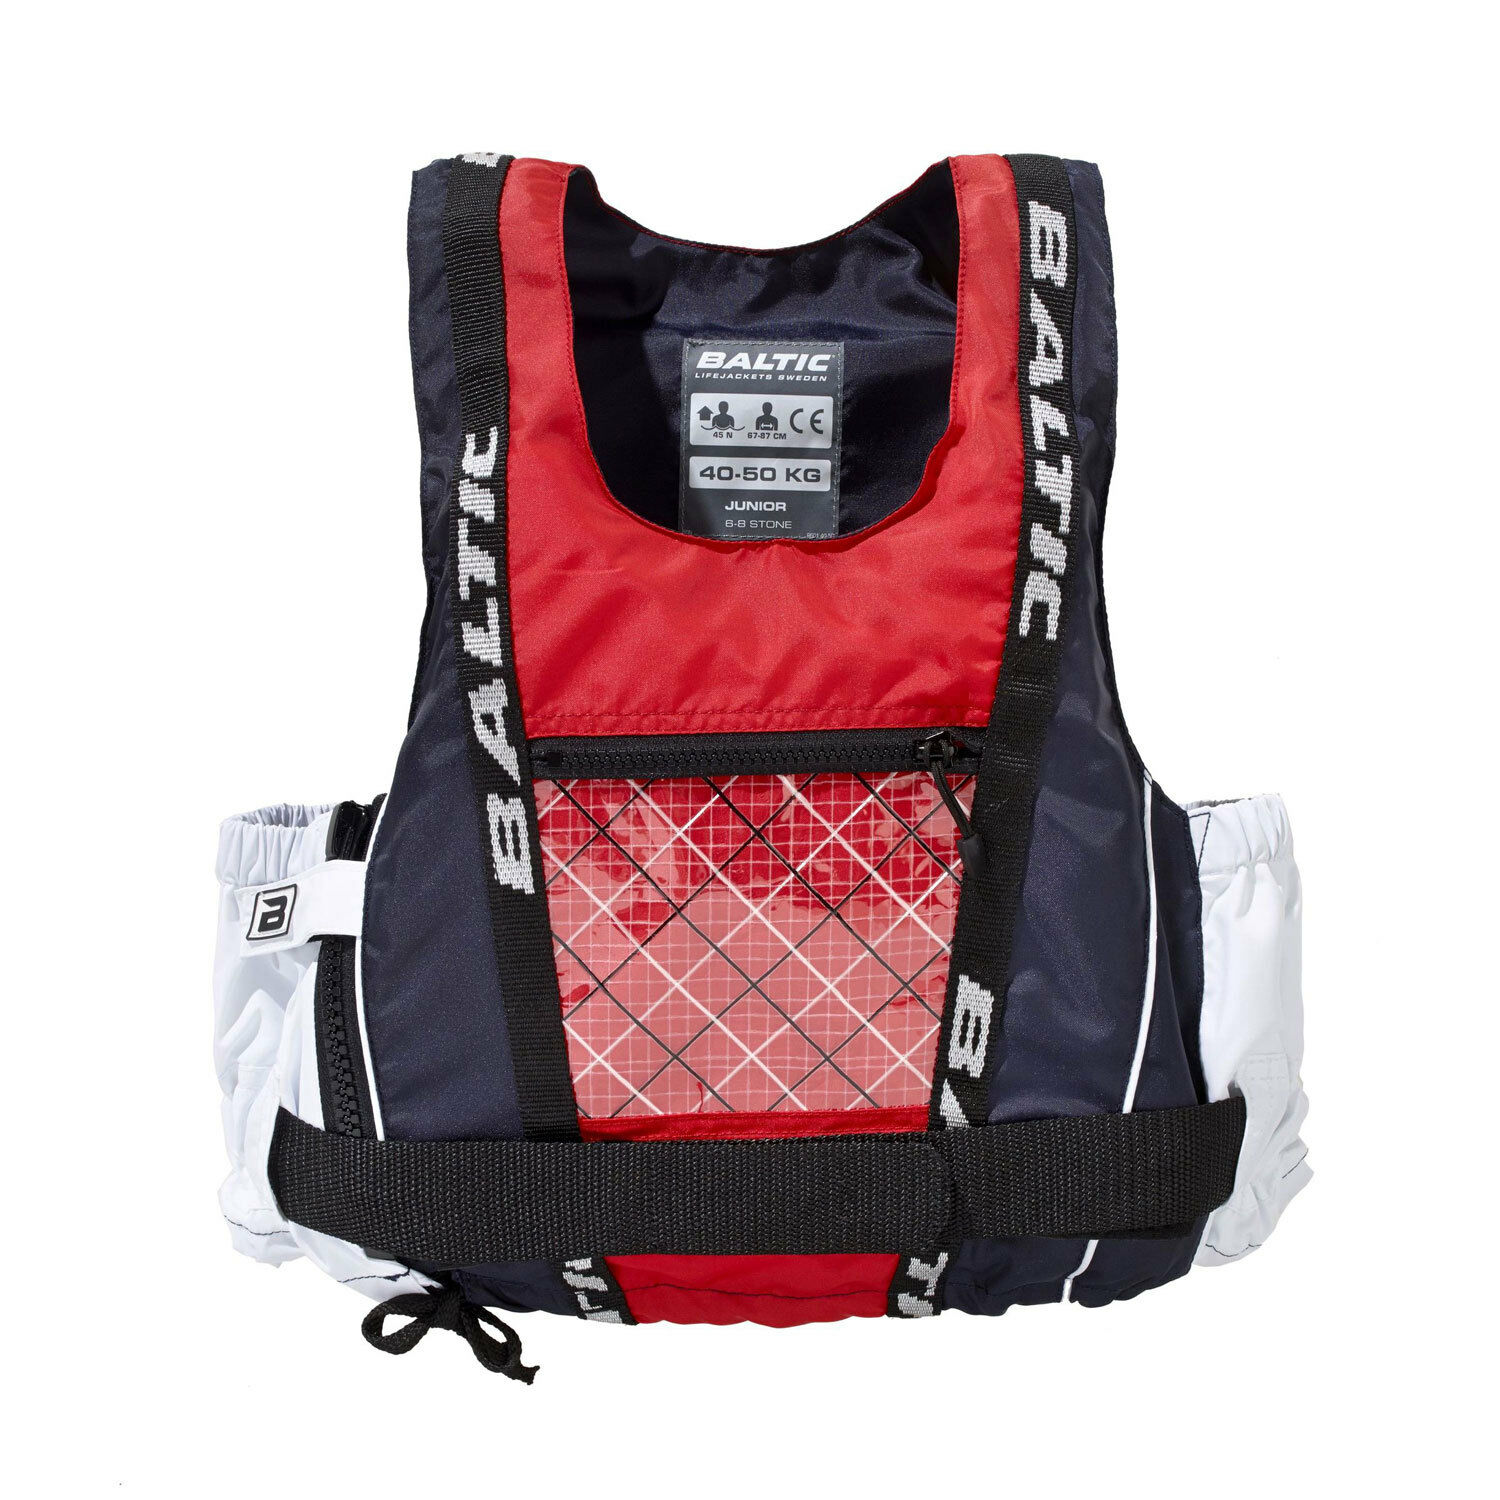 Baltic Dinghy Pro Buoyancy Aid - bluee Red White